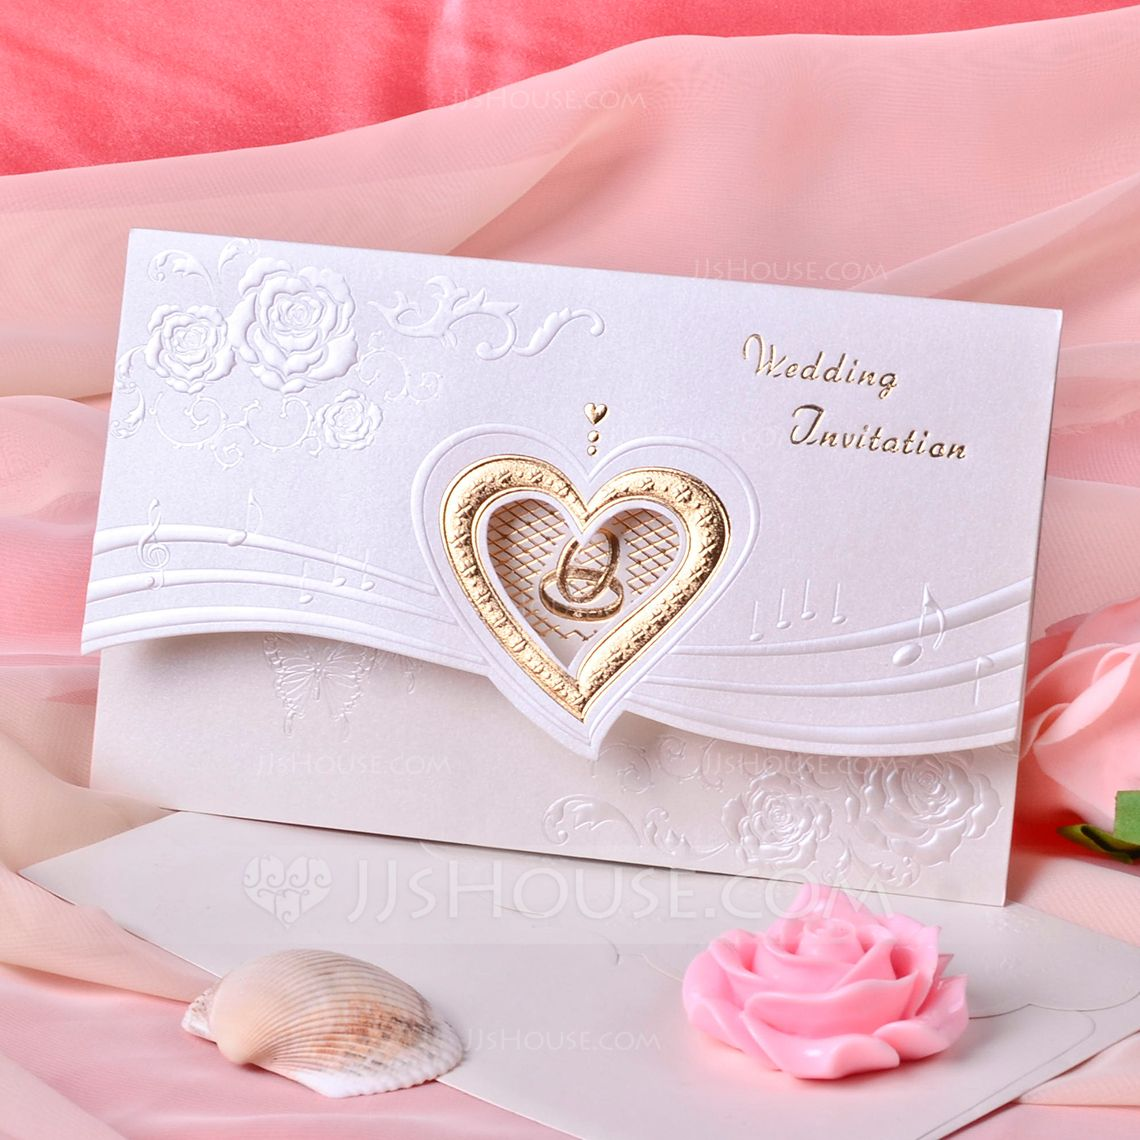 50 White non shed glitter card hearts great for card making invites